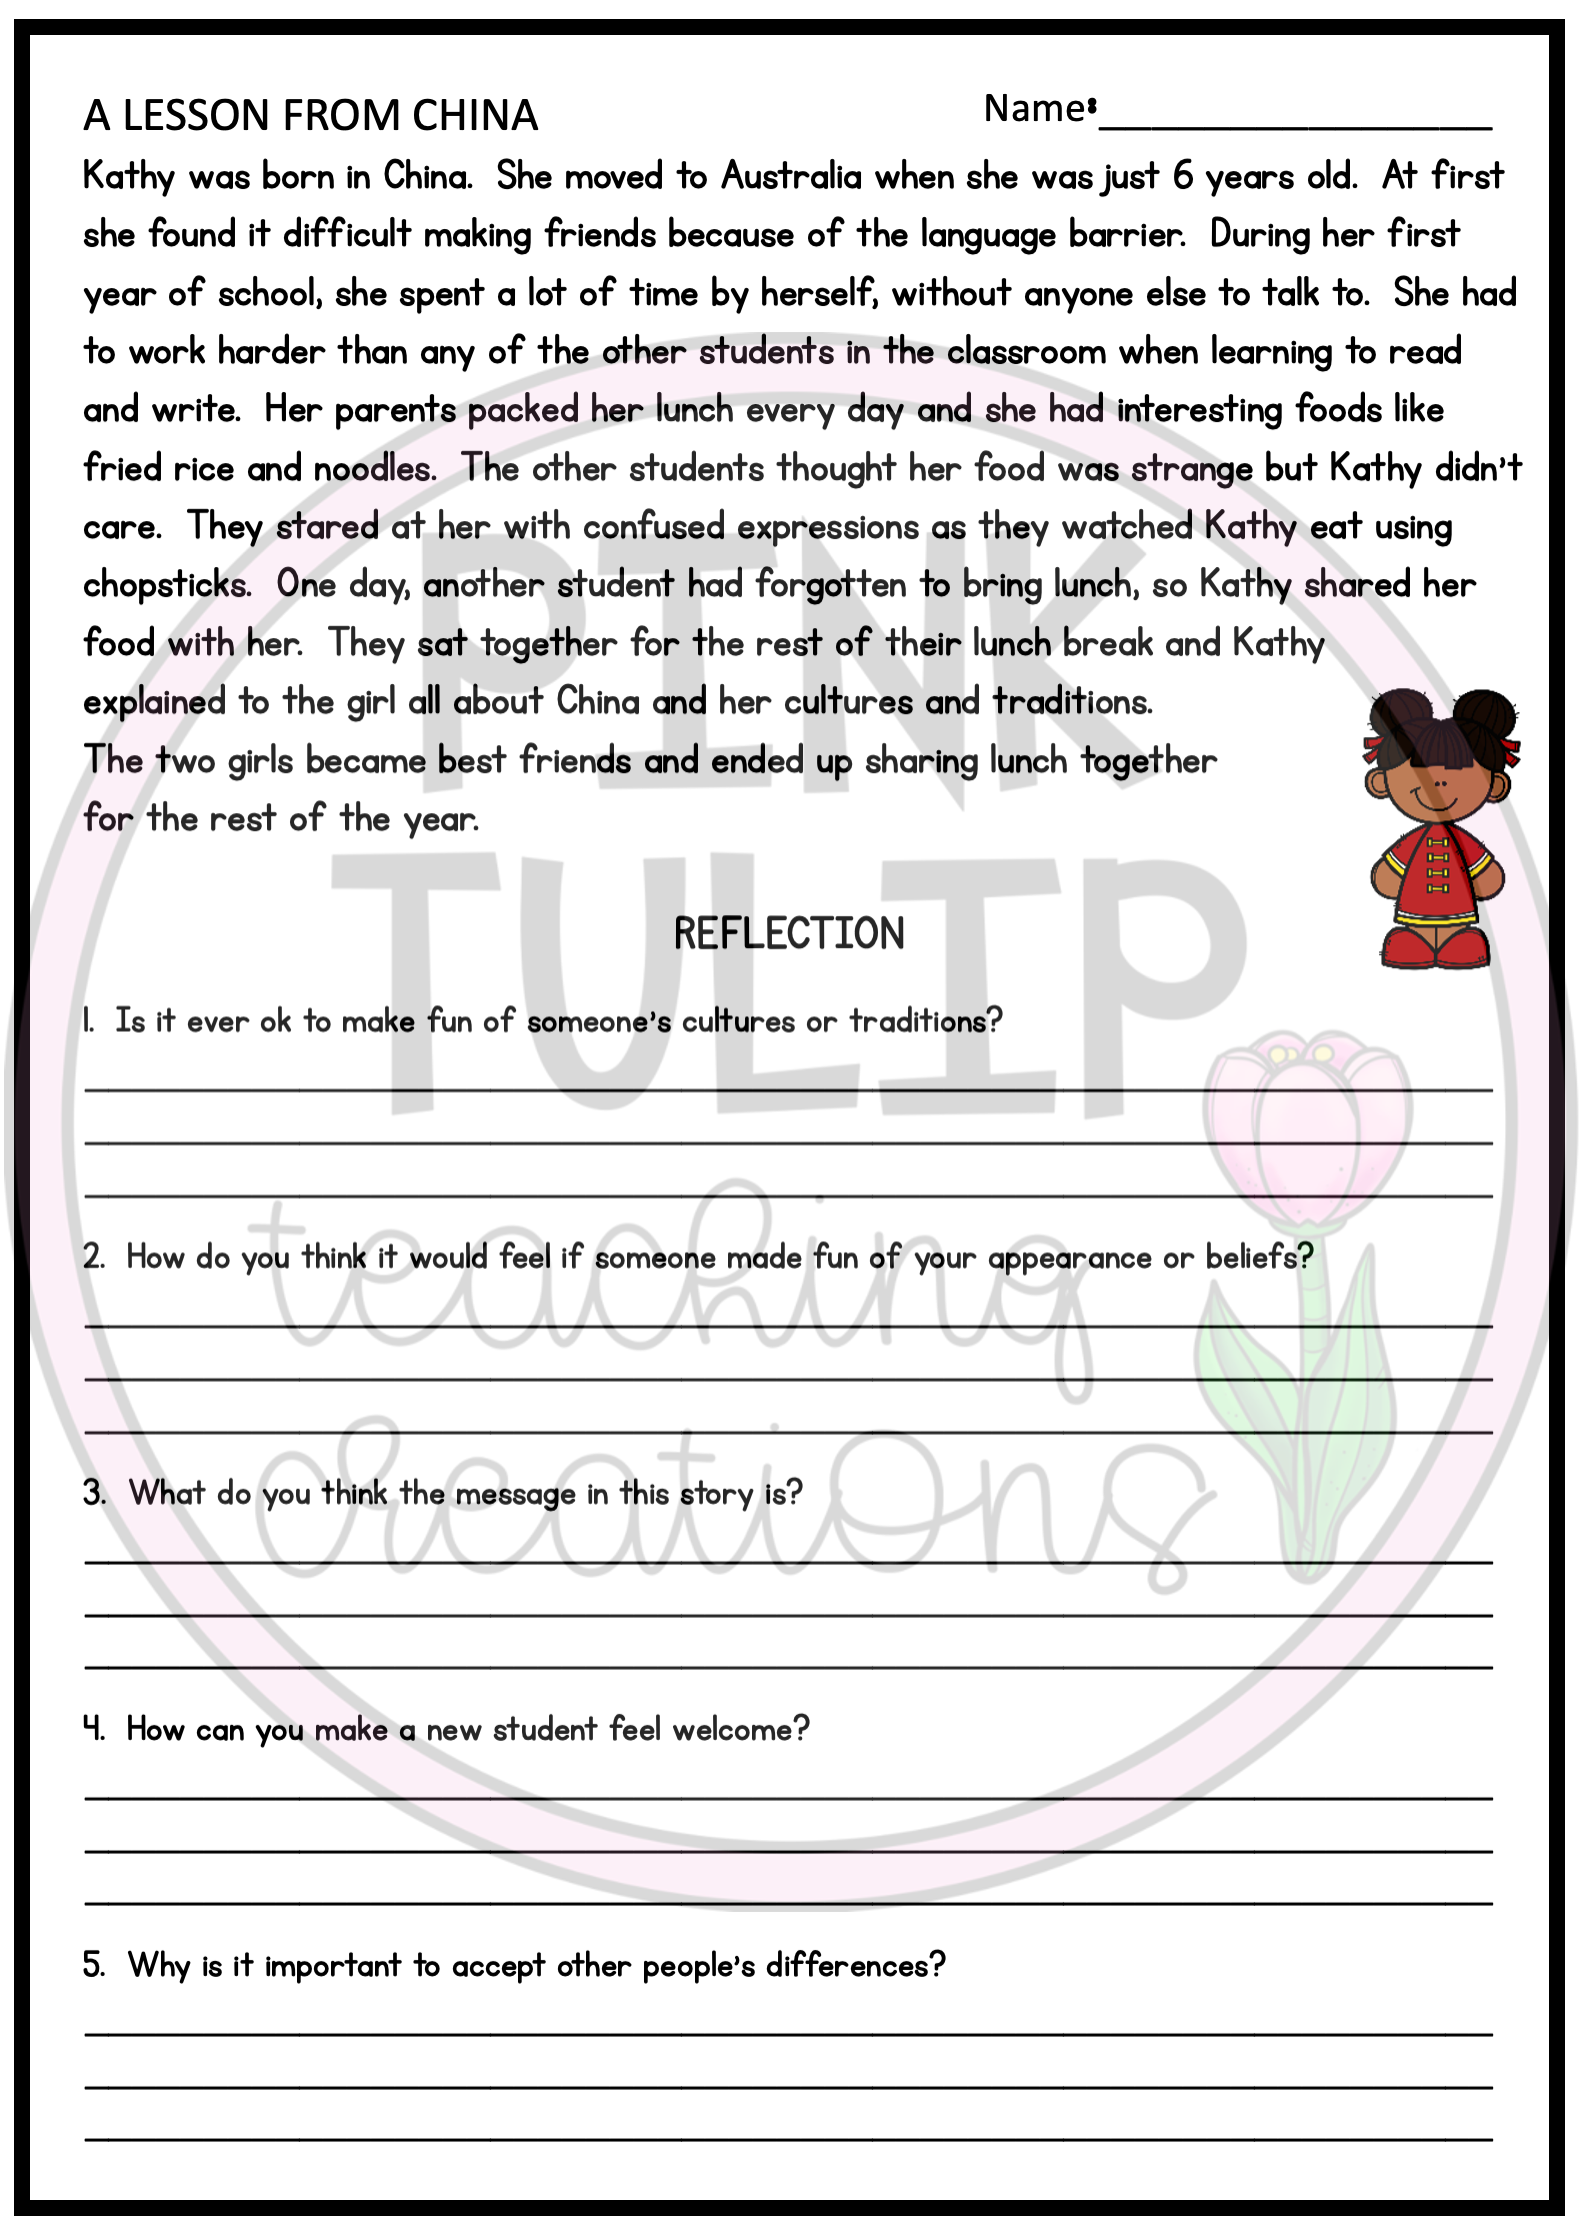 Social Emotional Comprehension Passages With Reflection Questions In 2021 Comprehension Passage Social Emotional Learning Activities Social Emotional [ 2234 x 1579 Pixel ]